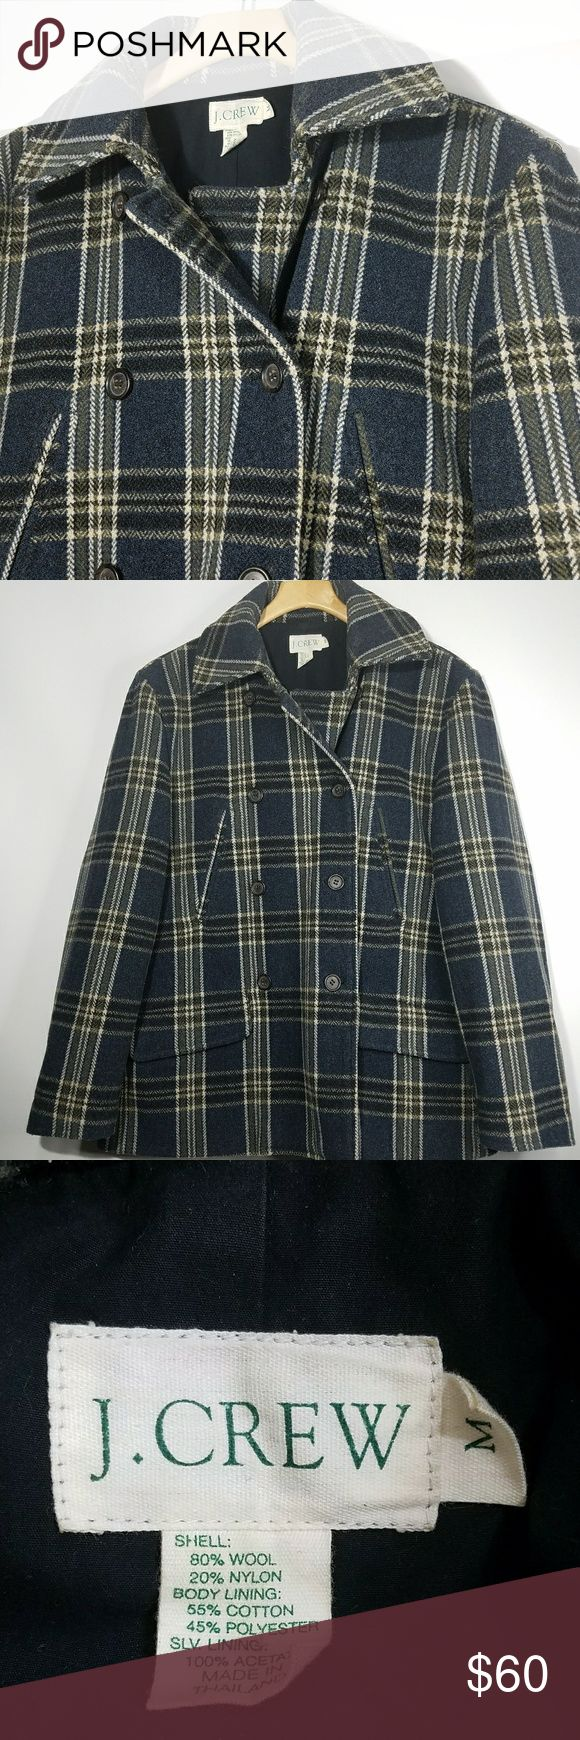 """J.Crew Peacoat M J.Crew Womens Peacoat M Navy Blue Beige Brown Plaid Wool Double Breasted Jacket  Excellent used condition!  Flat Lay Measurements Unstretched Underarm to underarm: 20"""" Length: 27  Comes from a smoke and pet free home! J. Crew Jackets & Coats"""